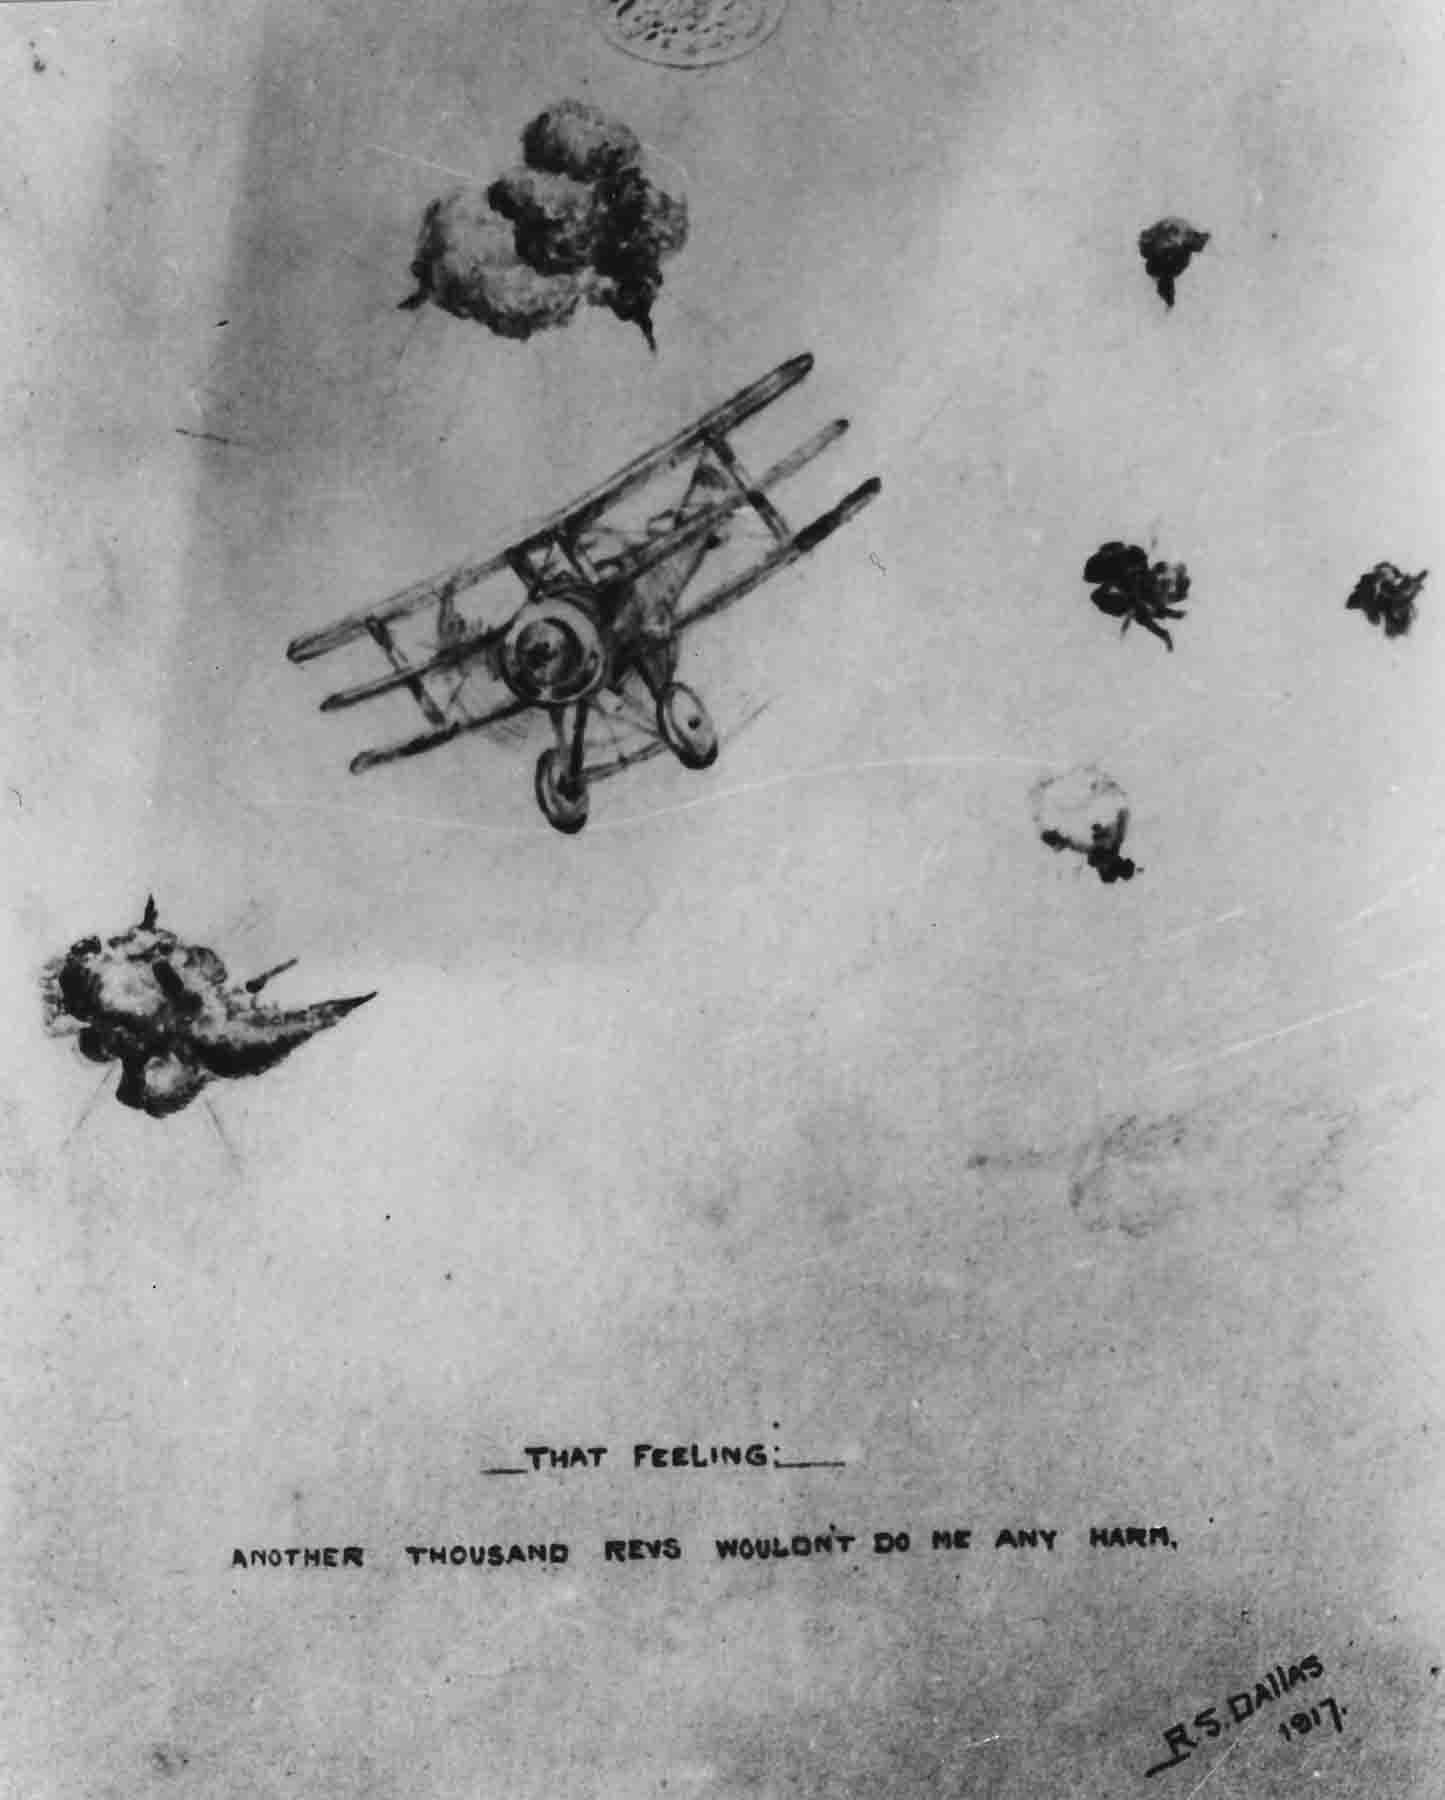 Drawing by Squadron Commander R.S. Dallas DSC, 1917 showing Triplane under anti-aircraft fire, entitled: That feeling - another thousand revs wouldn't do me any harm, 1917 .